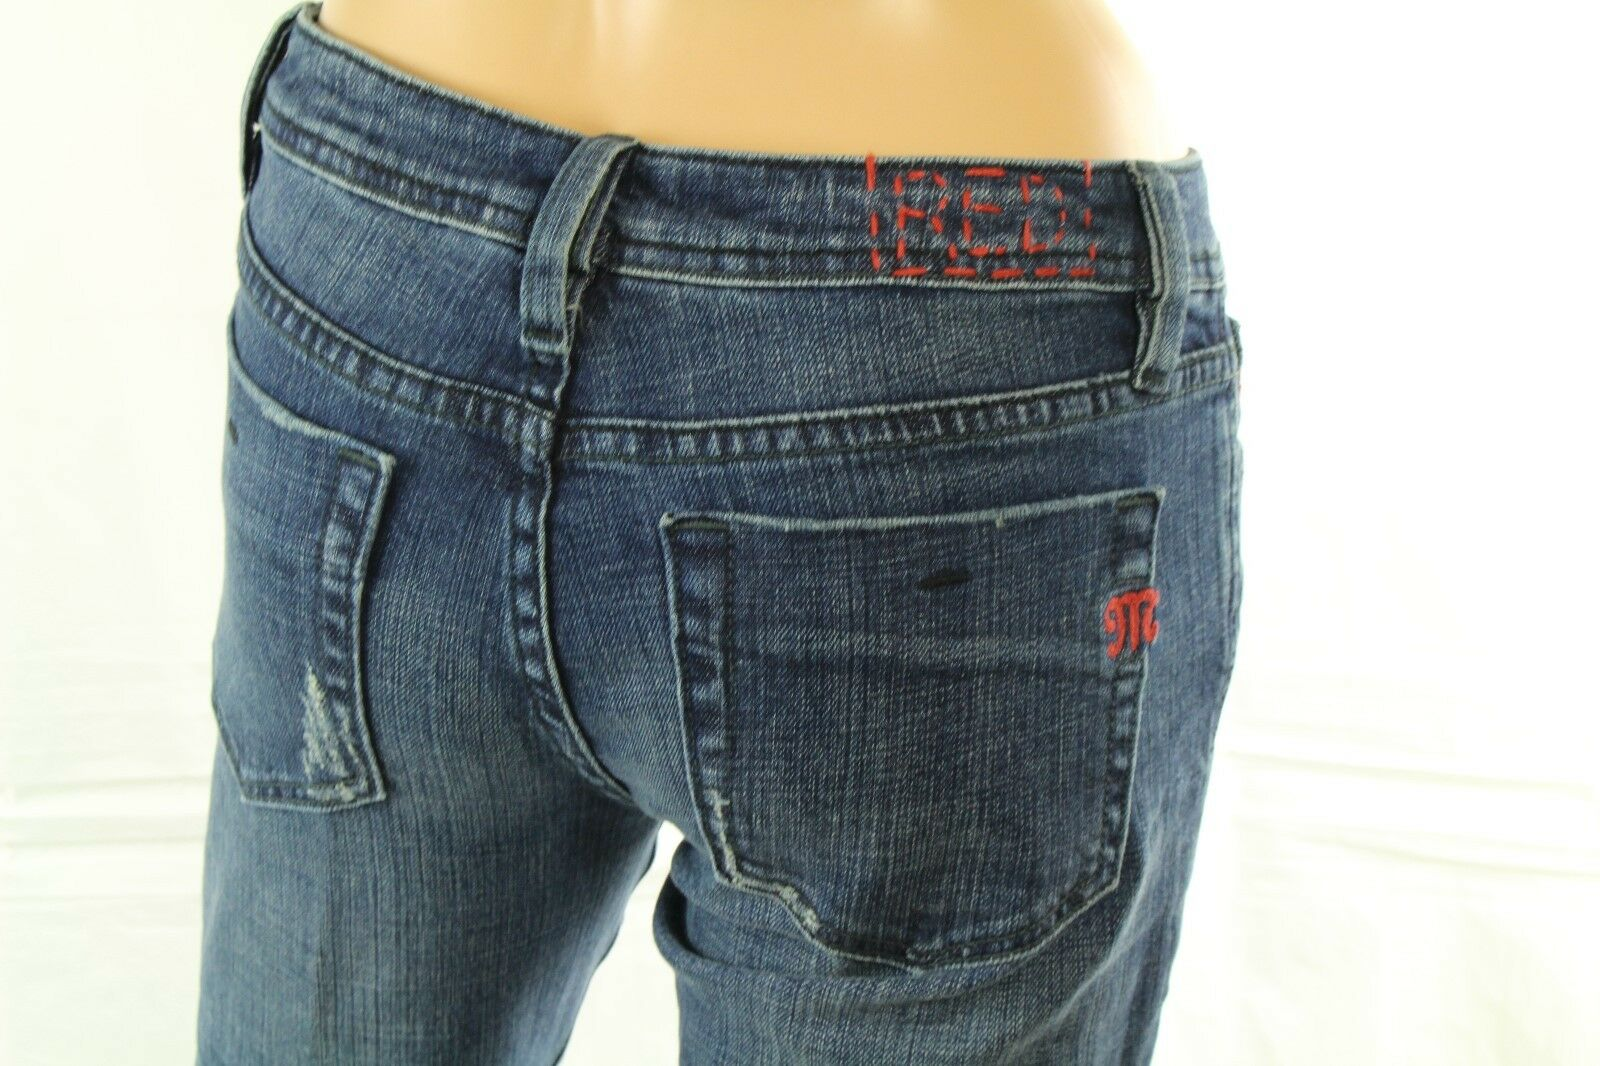 Miss Me Women's Jeans Cameron Red Label High Waisted Flare Size 27